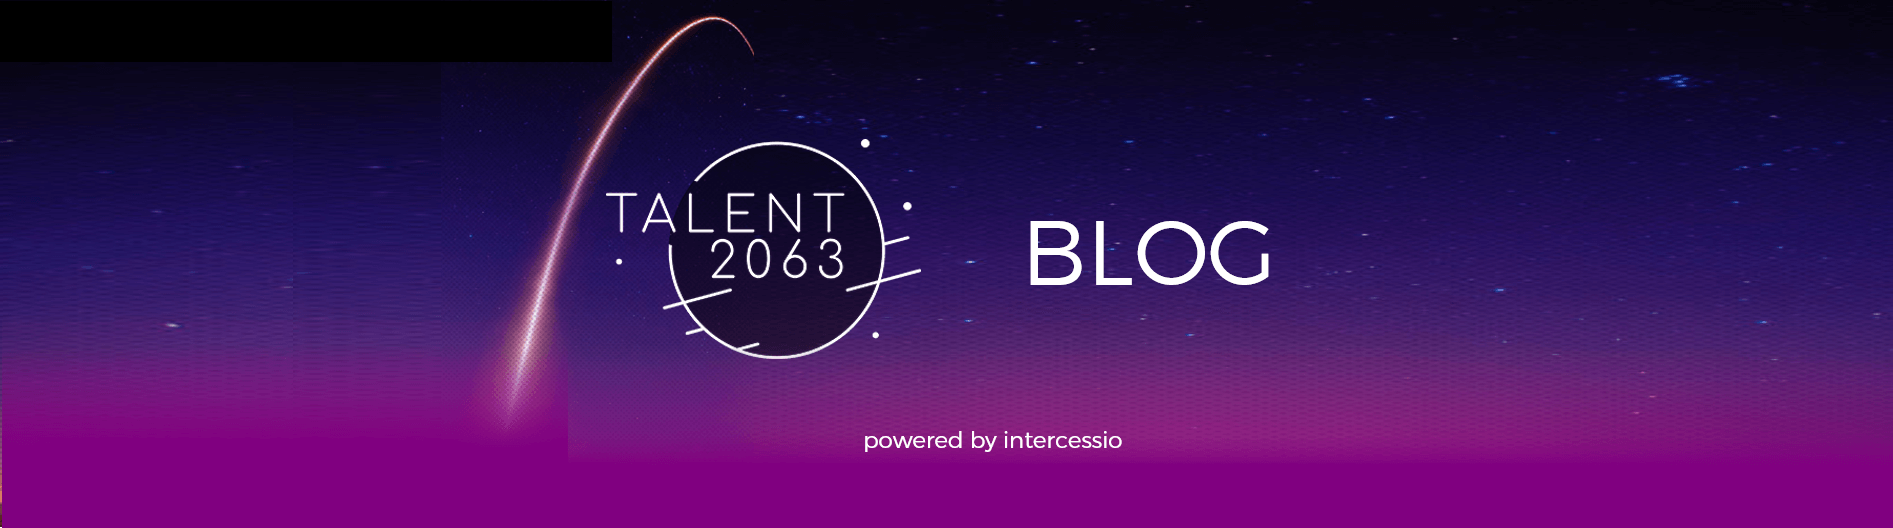 Talent2063 Blog - powered by Intercessio